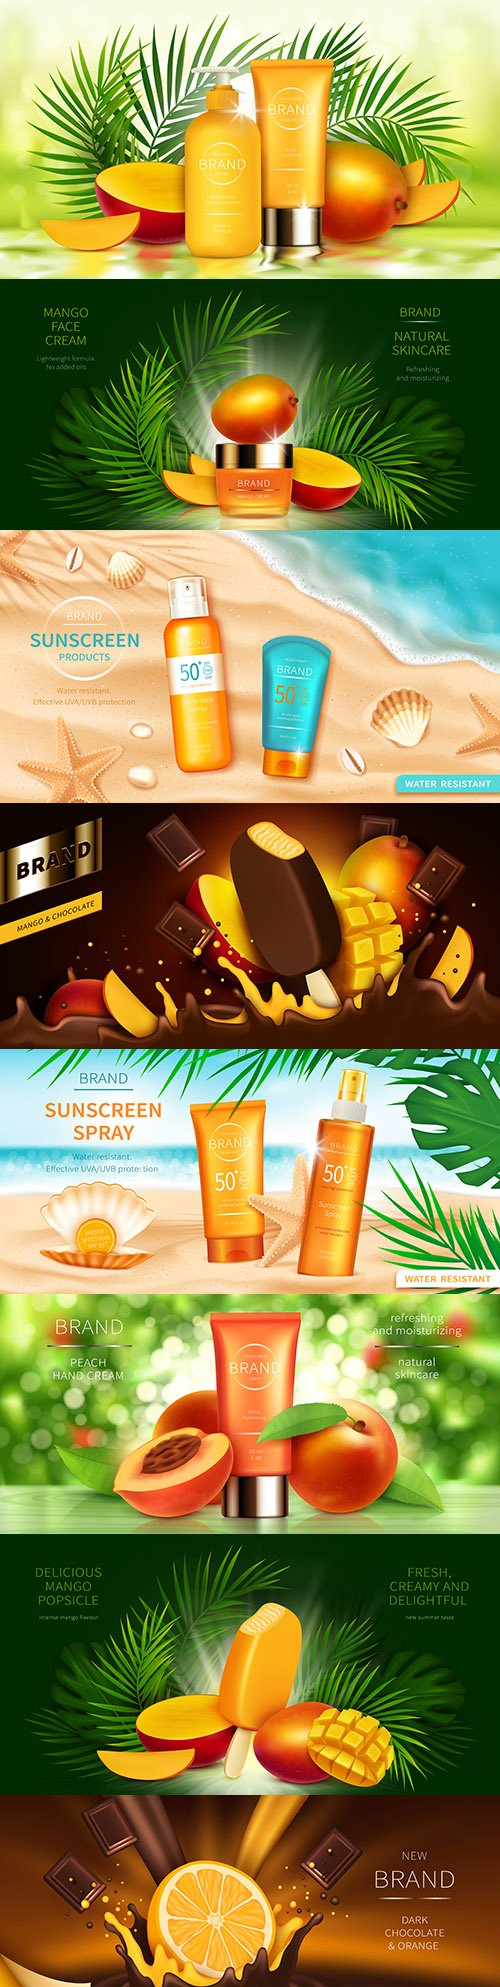 Fruit cosmetics for body care realistic illustrations